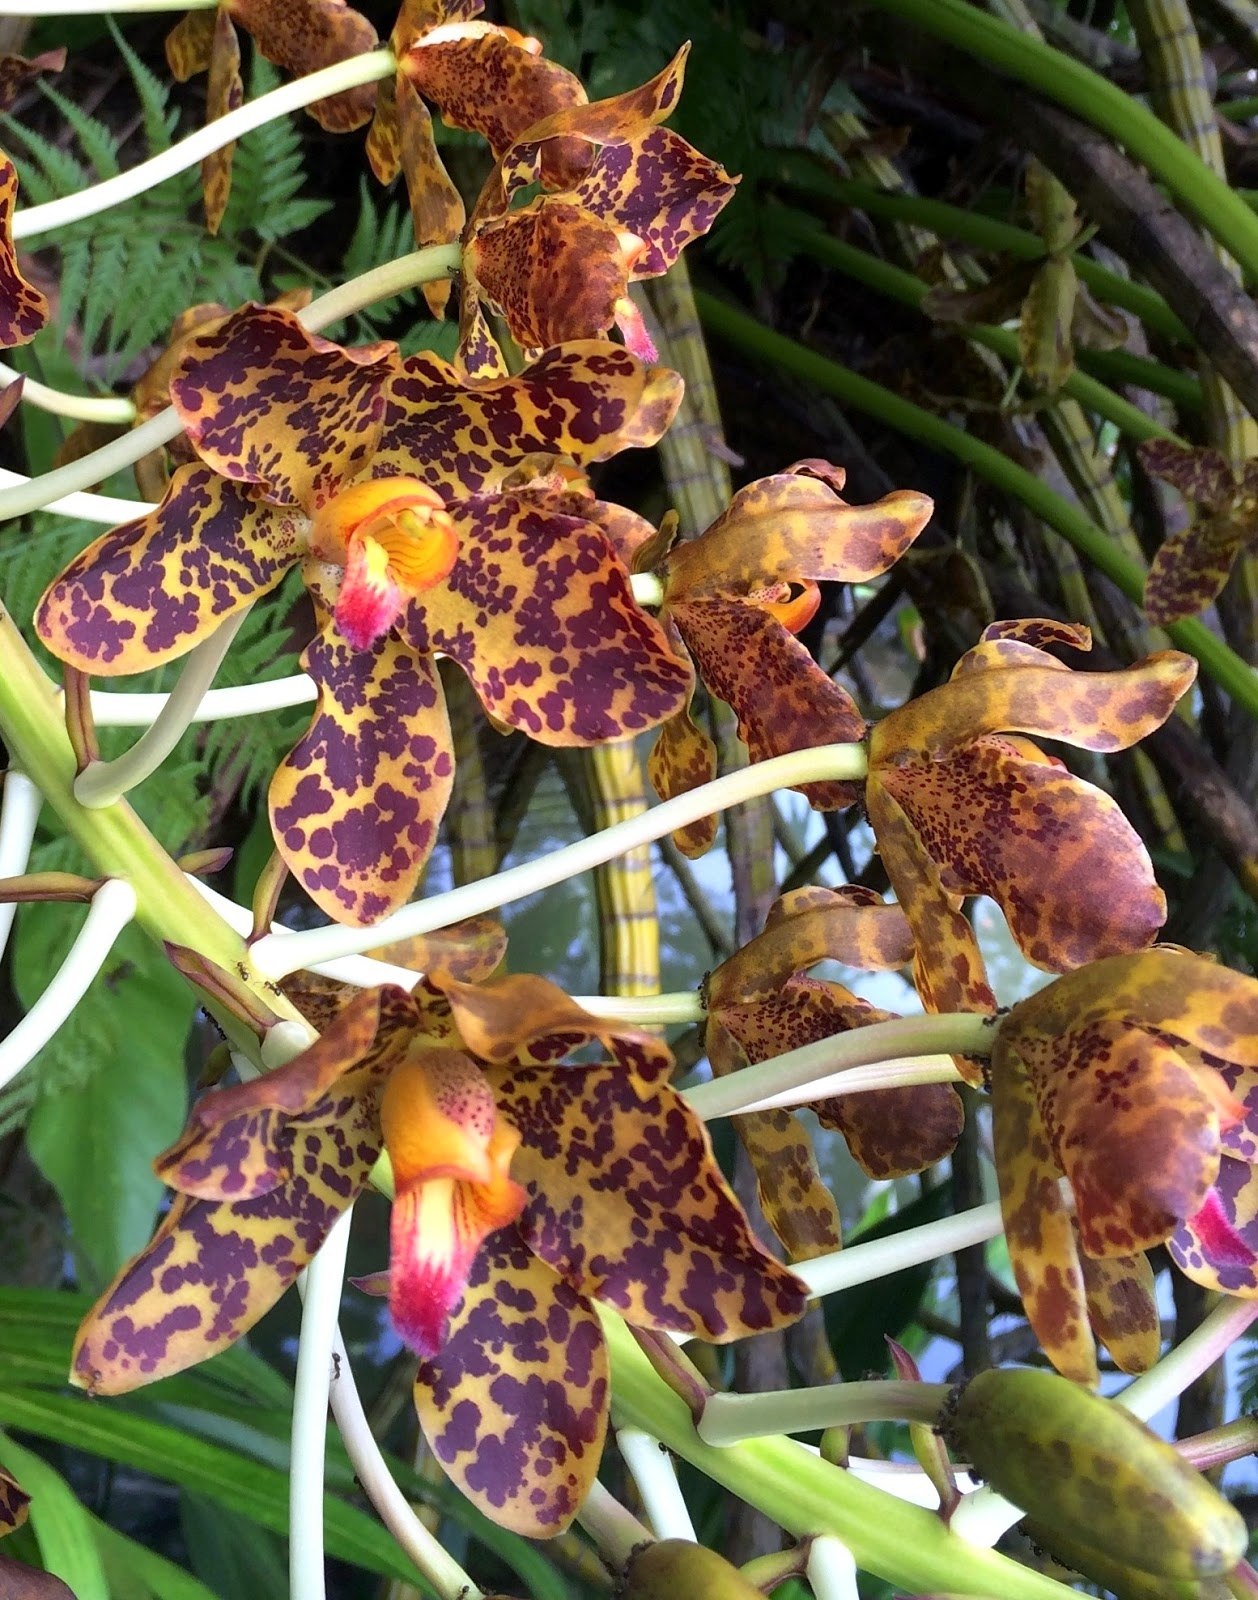 The Intercontinental Gardener: The heavyweight of orchids in full bloom